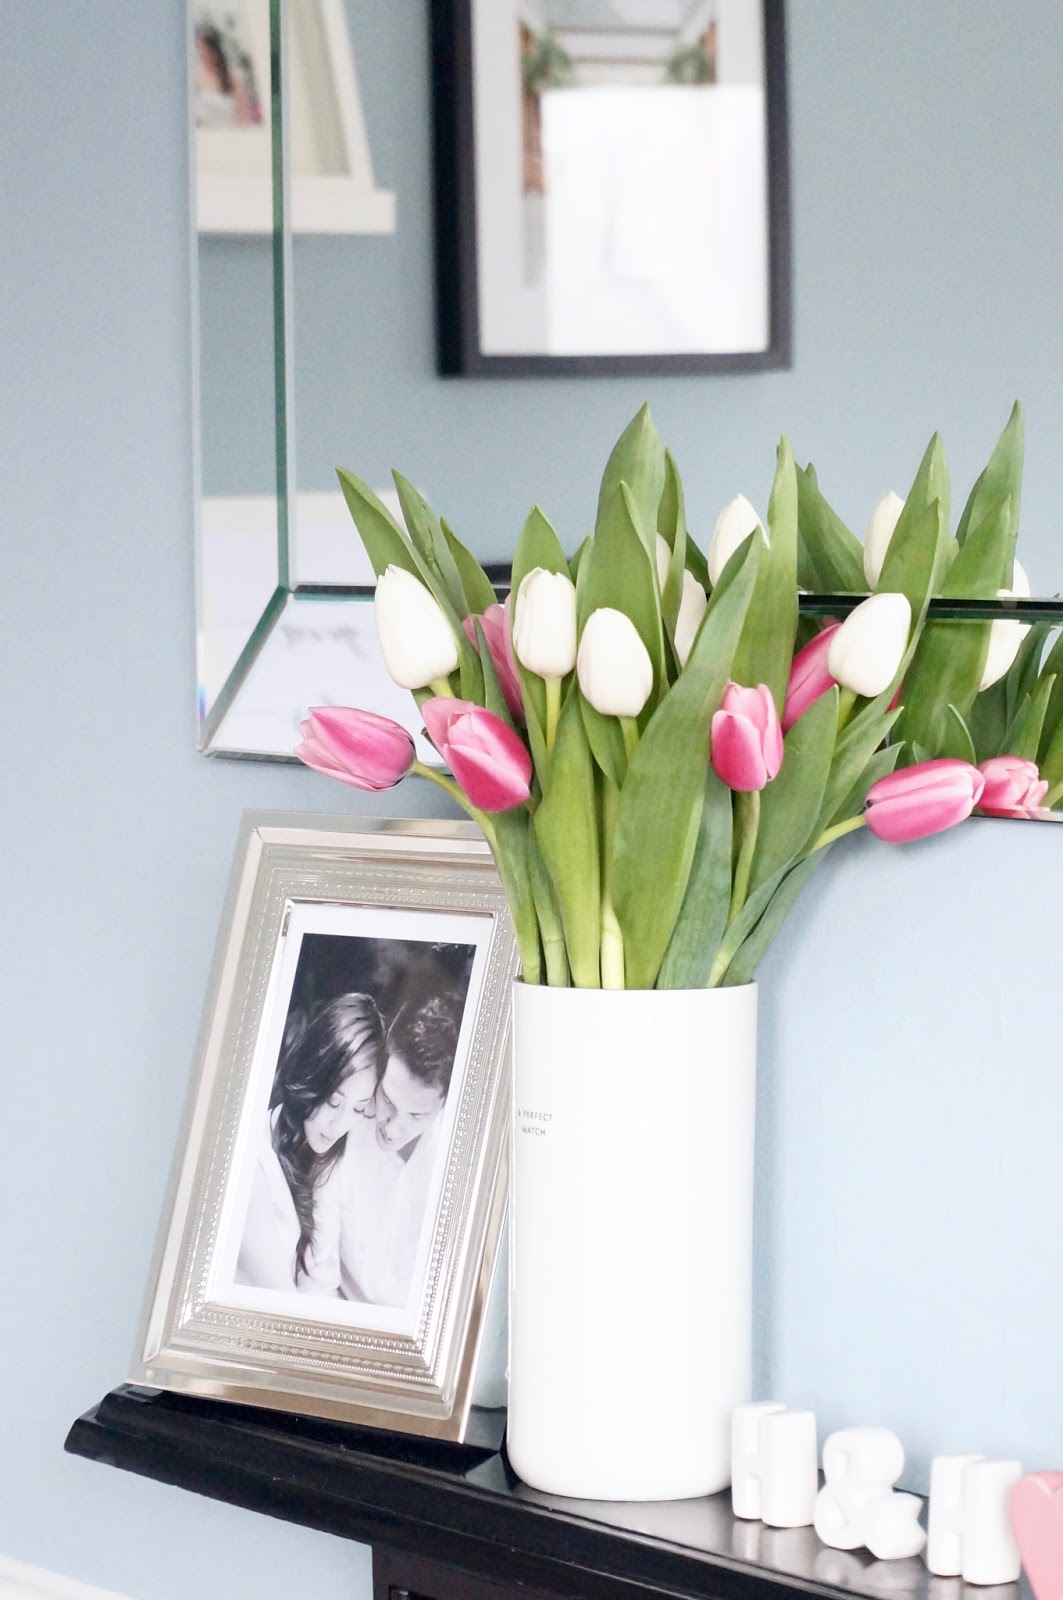 Ways to Spring Clean your home